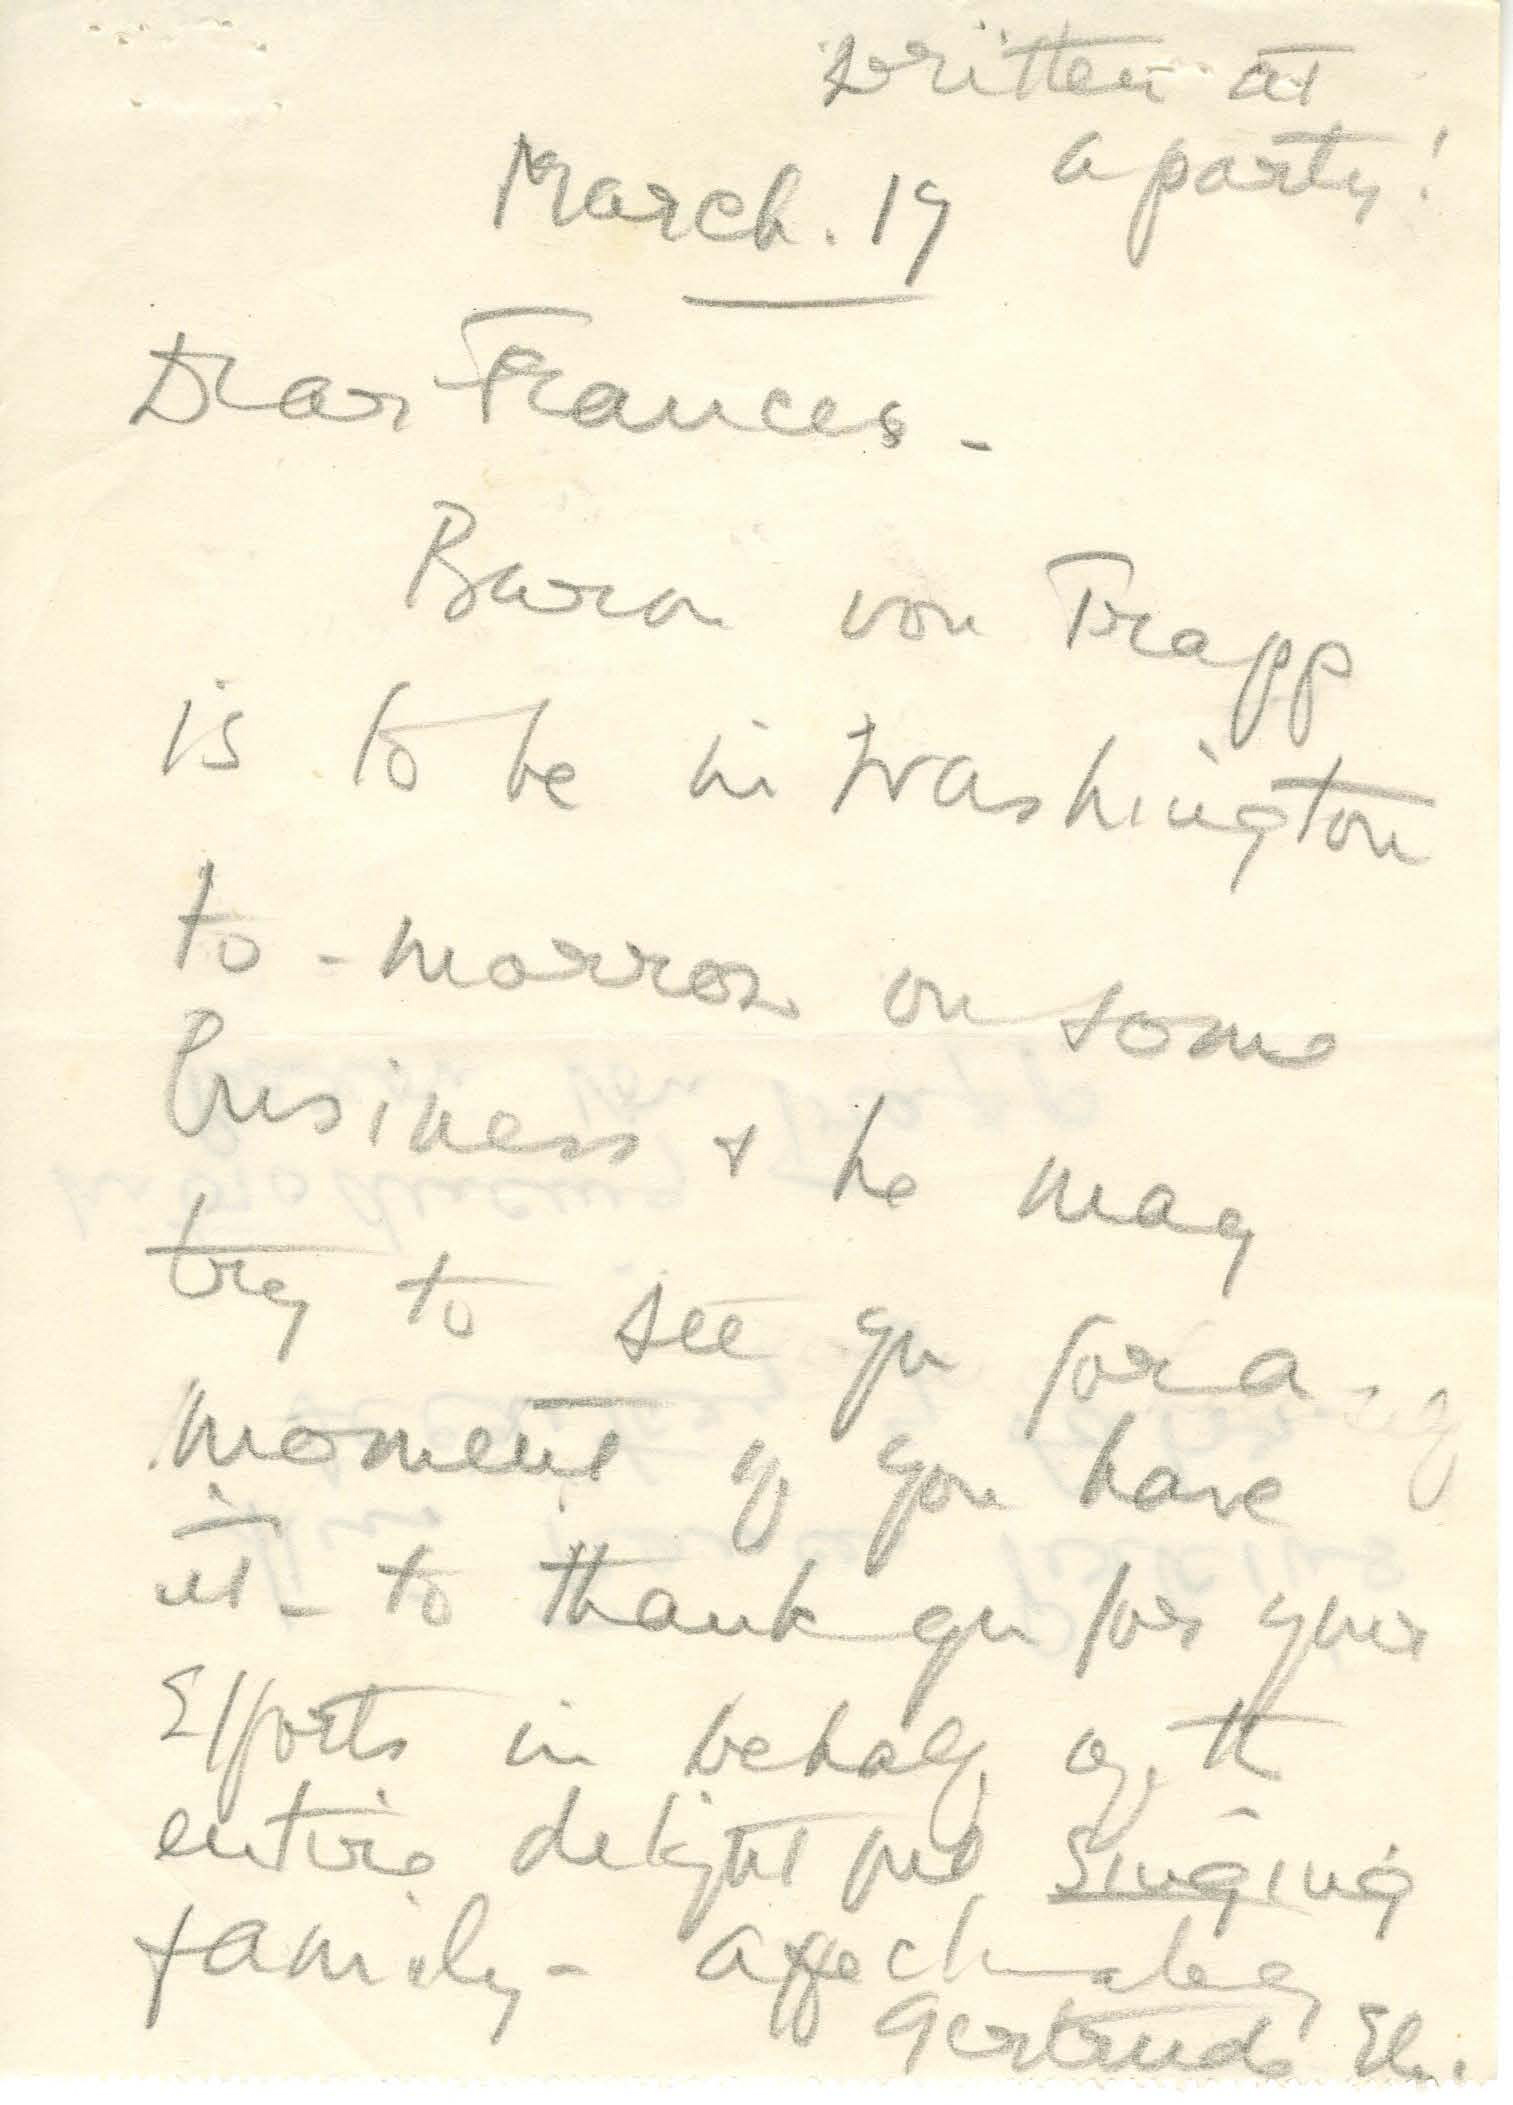 Gertrude Ely to Frances Perkins, March 19, 1940. (National Archives Identifier 6600095)